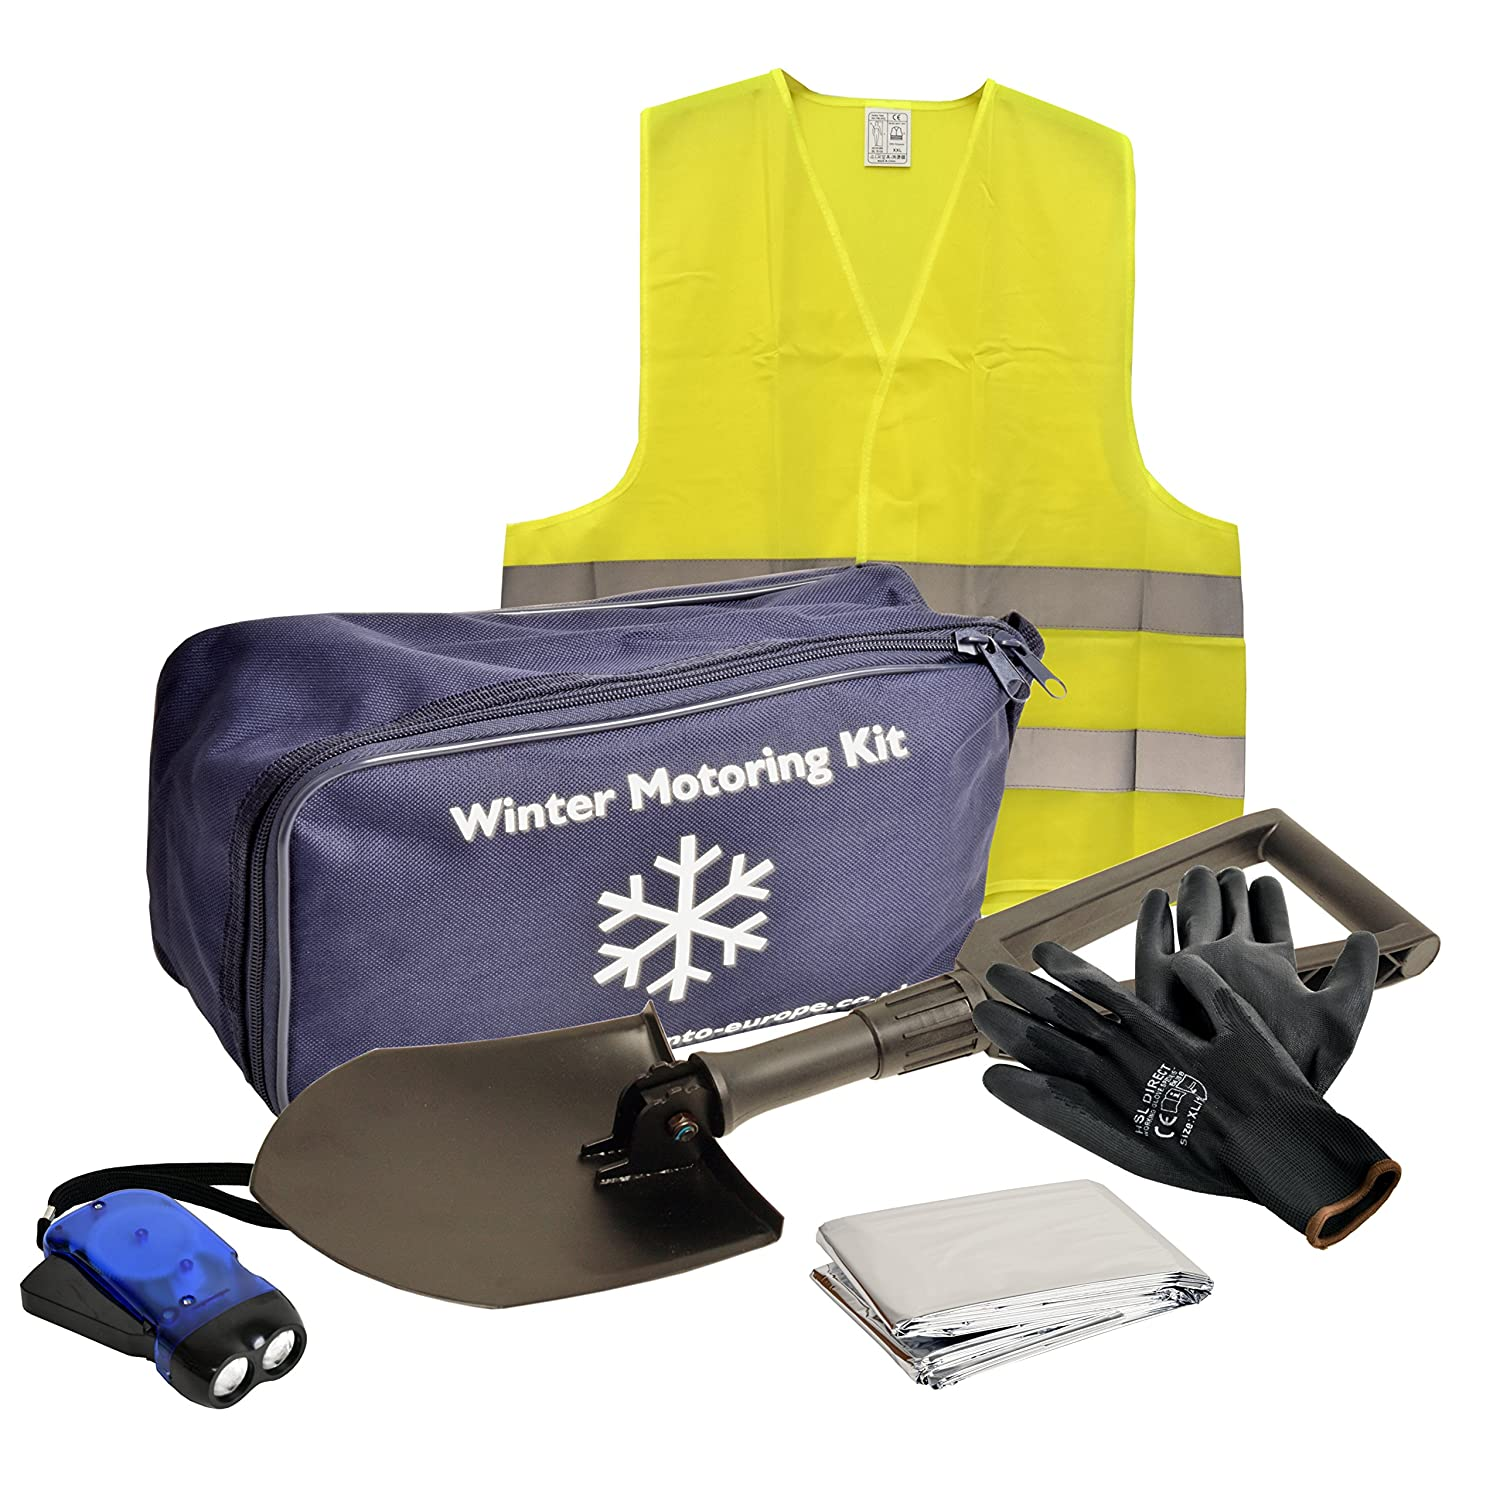 Winter Car Safety Motoring Kit, Cold Weather Essentials, Snow And Ice Preparation Kit, 6 Piece Emergency Breakdown Kit Driving Travel